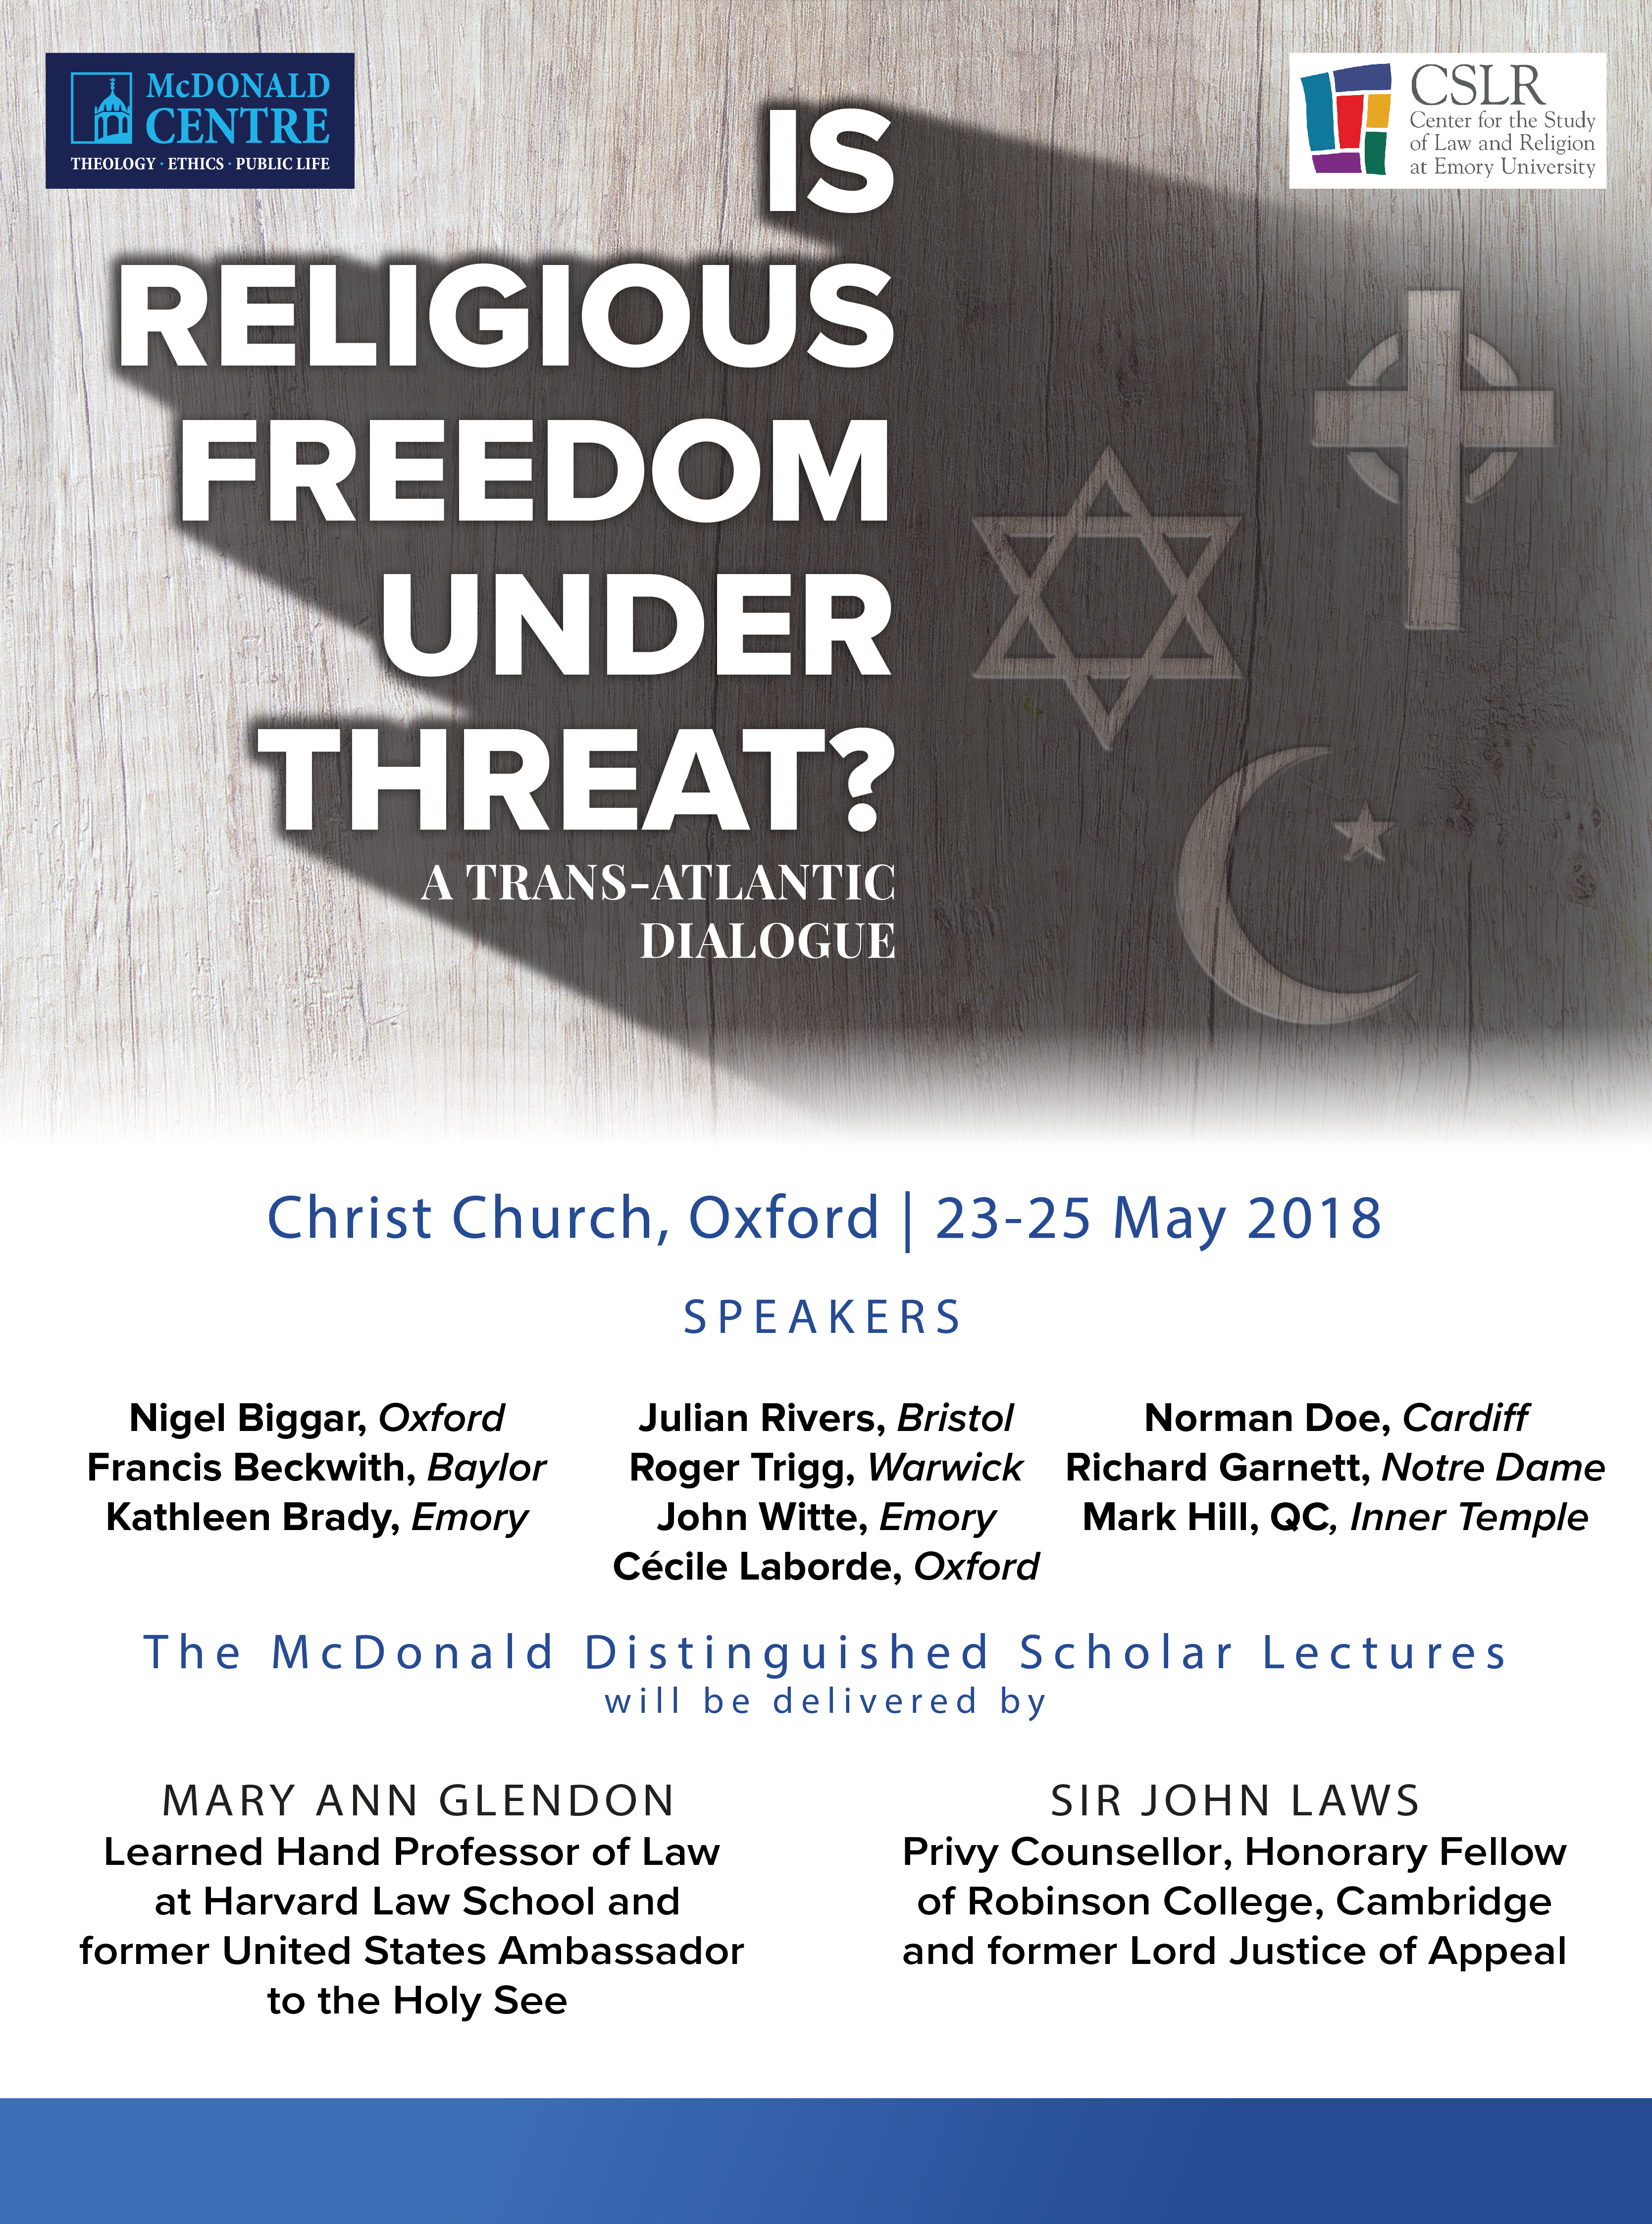 Creative And Academic Freedom Under Threat From Religious: Final McDonald Lectures To Focus On Religious Freedom